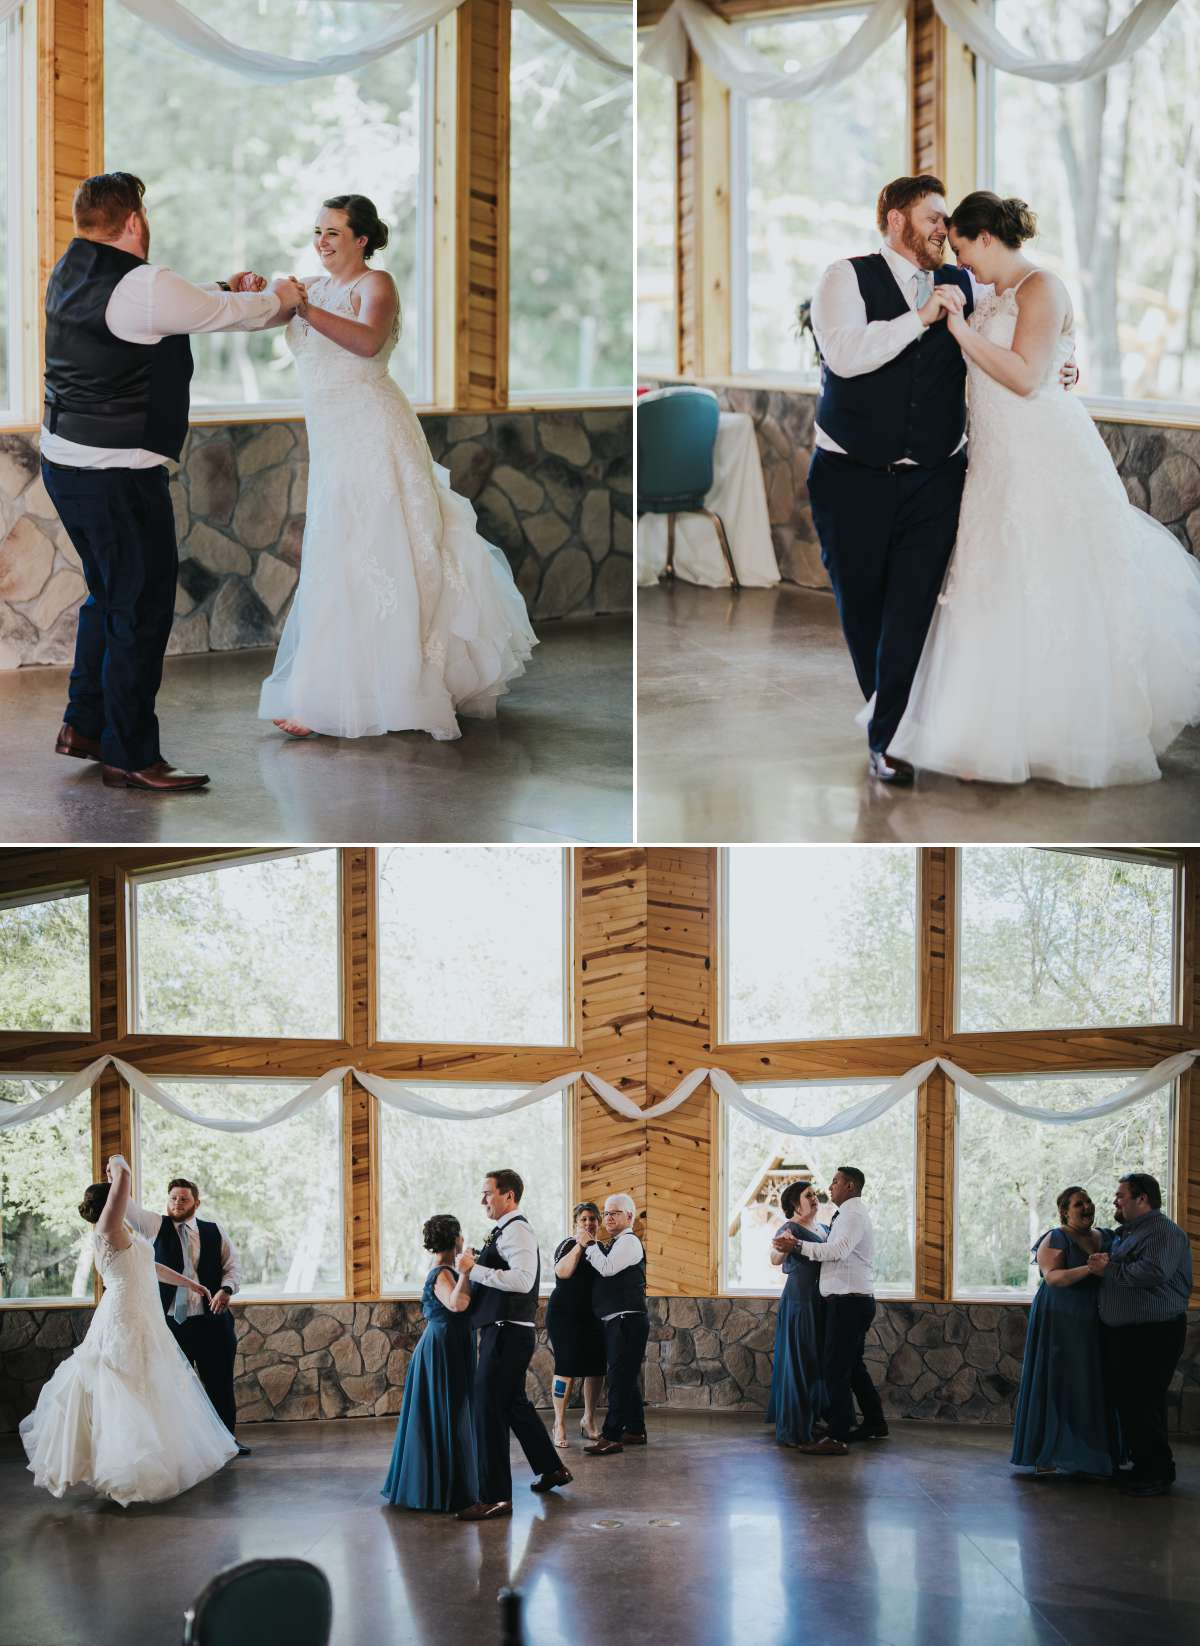 Bride and Groom First Dance at Romantic Moon Event Center